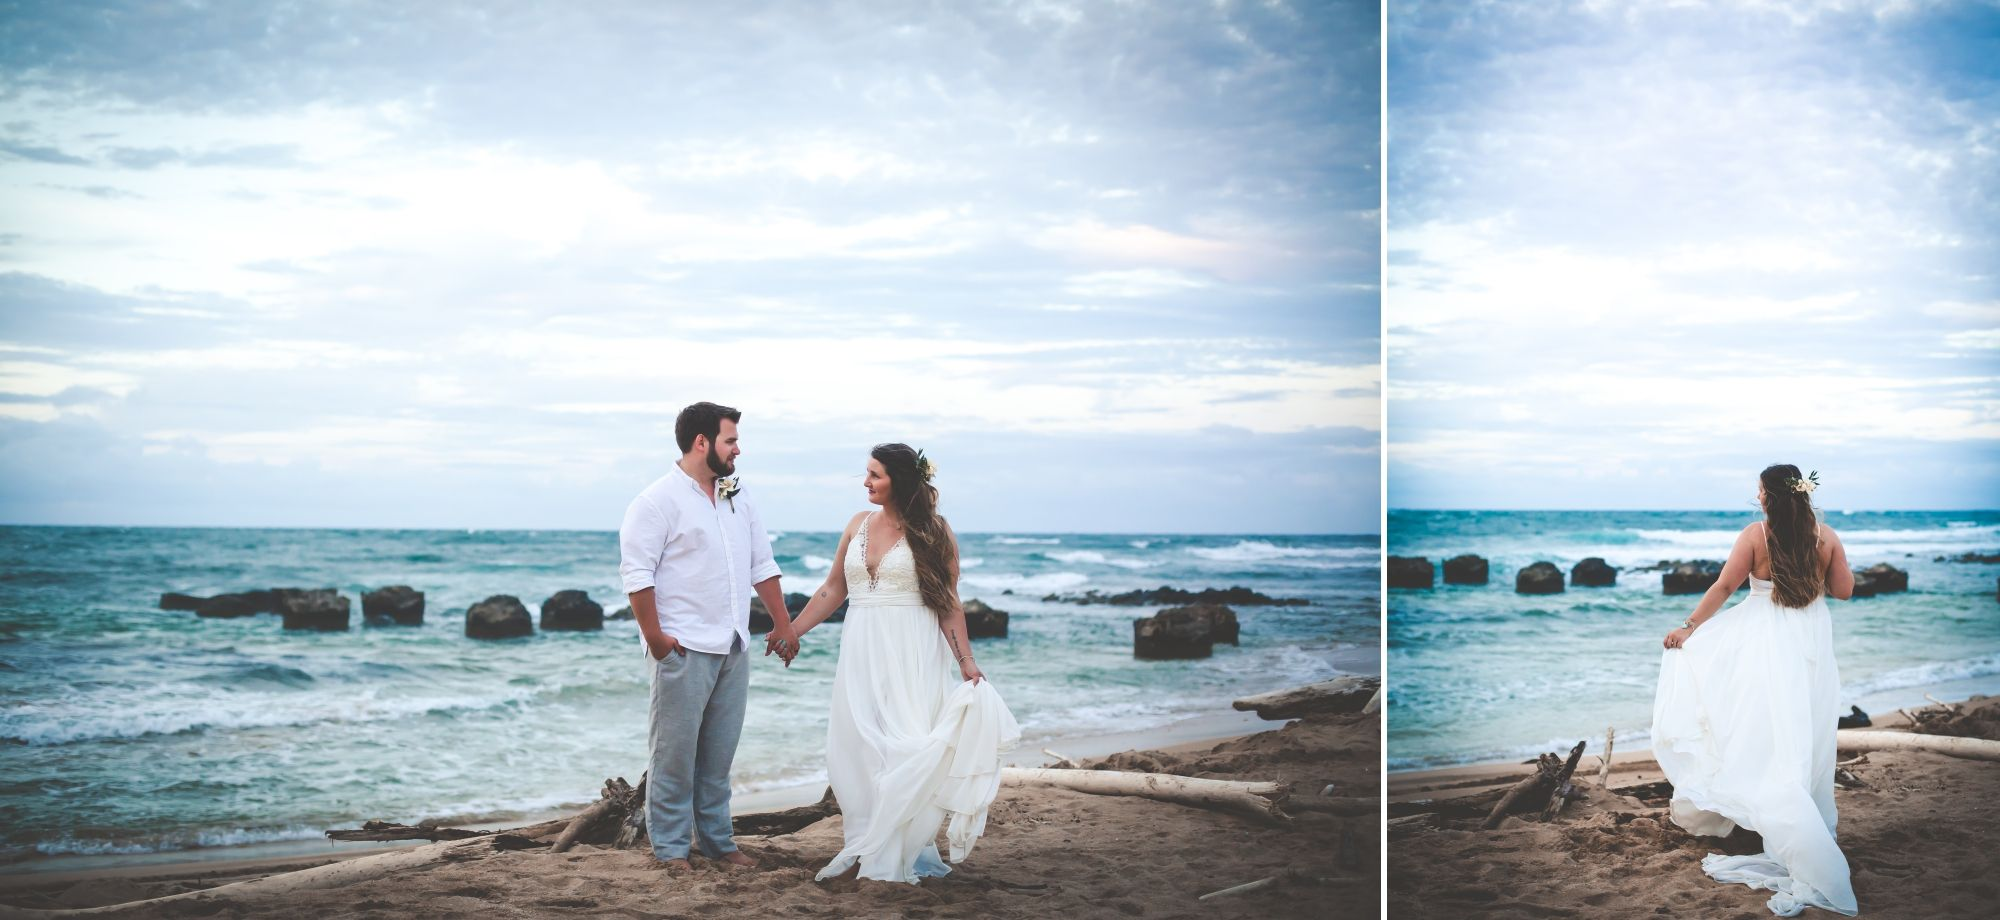 Photo of bride and groom holding hands with bride holding the side of her dress in front of the ocean.